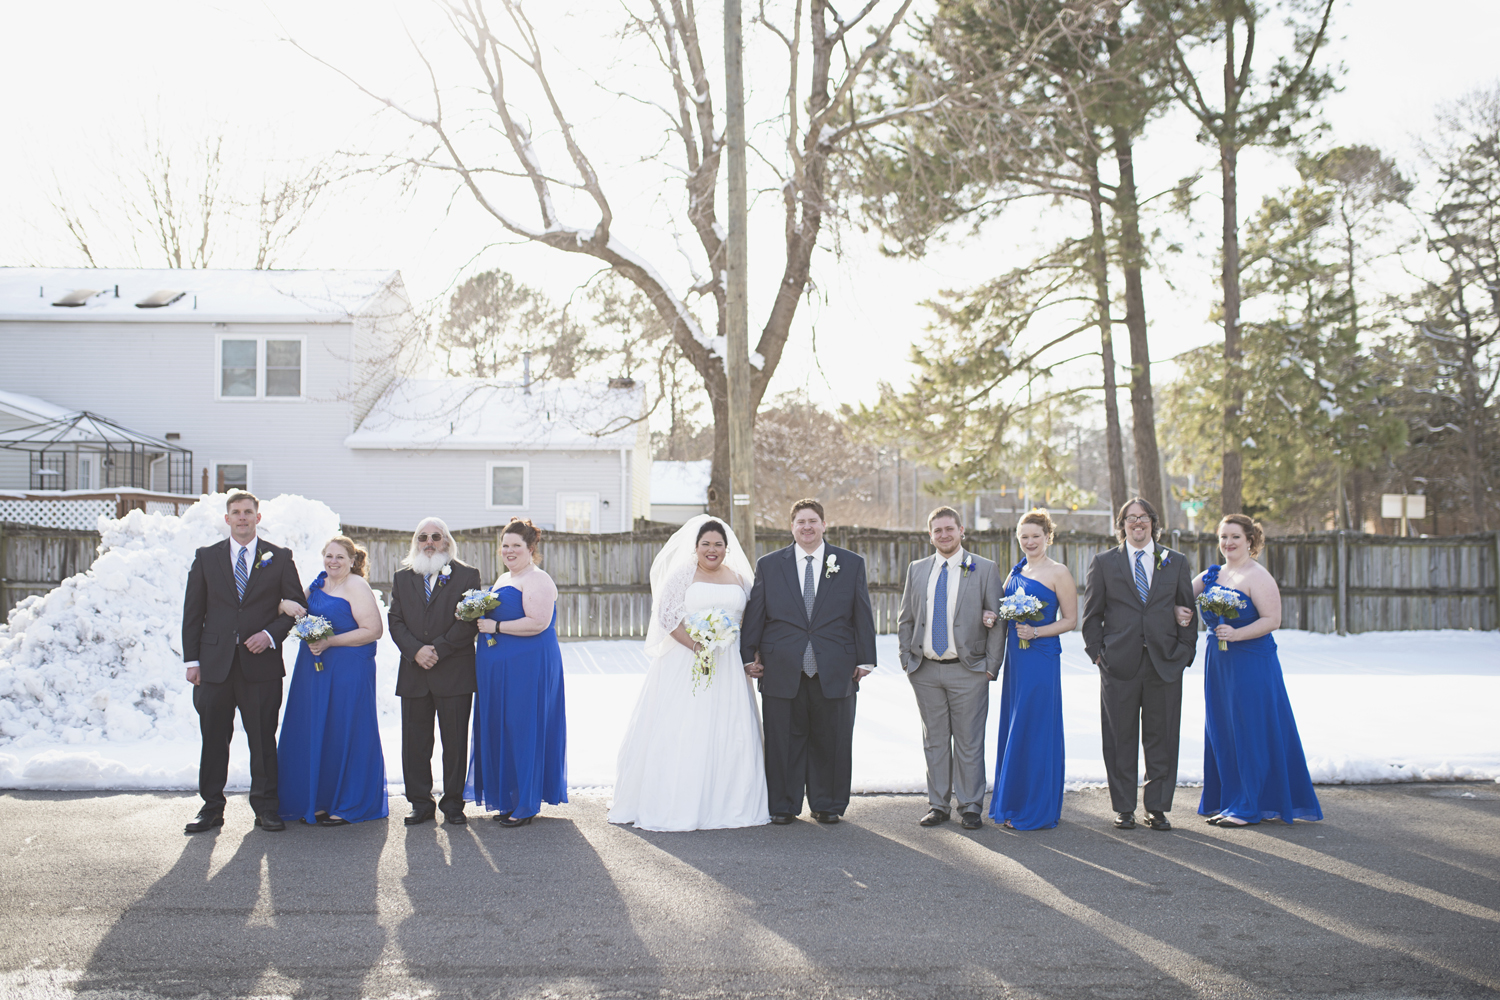 Editorial bridal party portraits | Winter wedding with snow